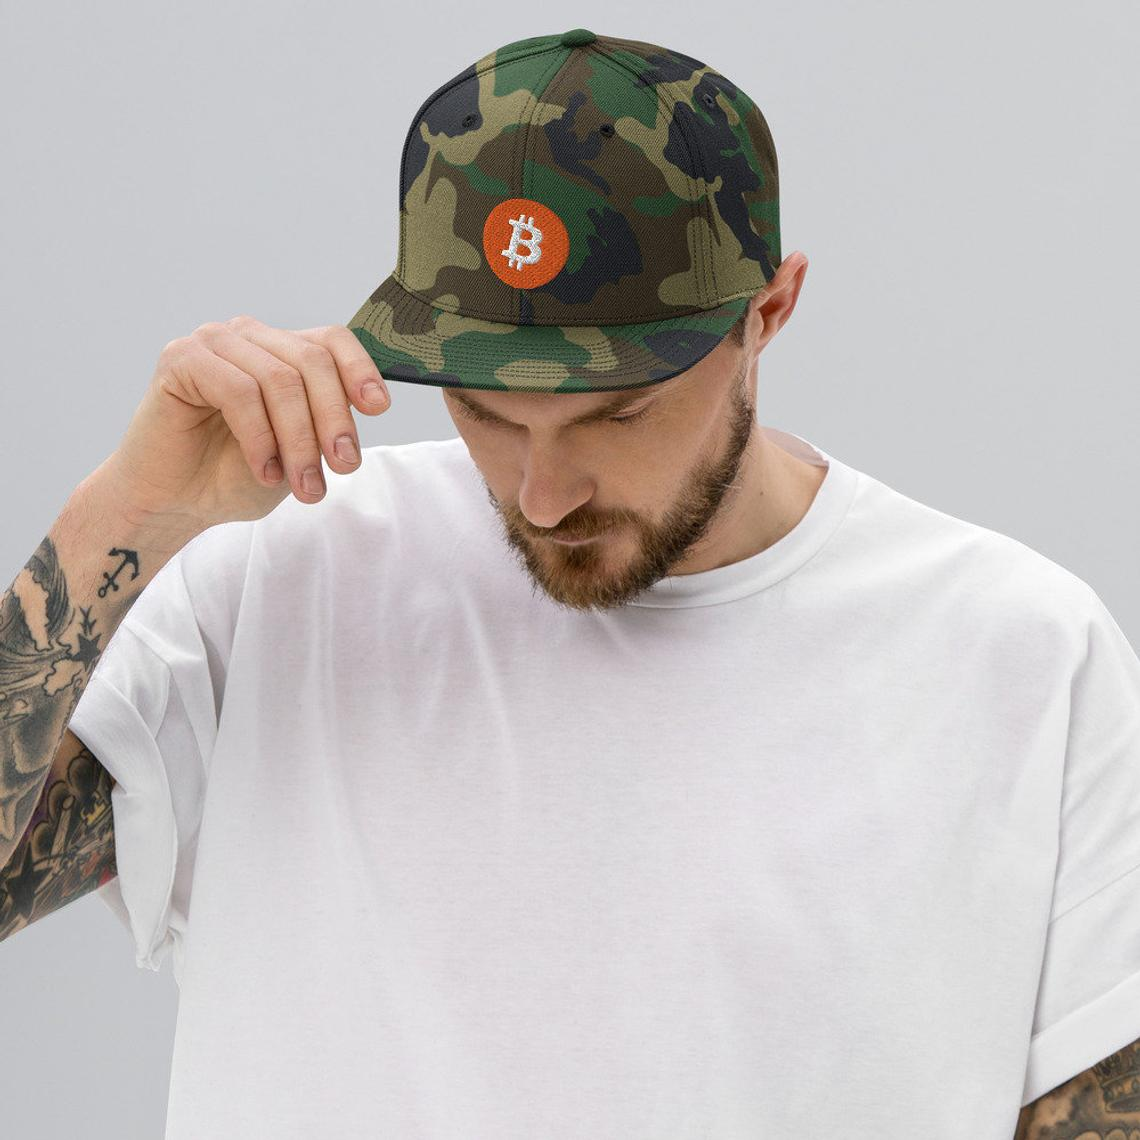 Bitcoin Logo Classic Snapback Hat - Now Available in the Shop - 20 Color Options